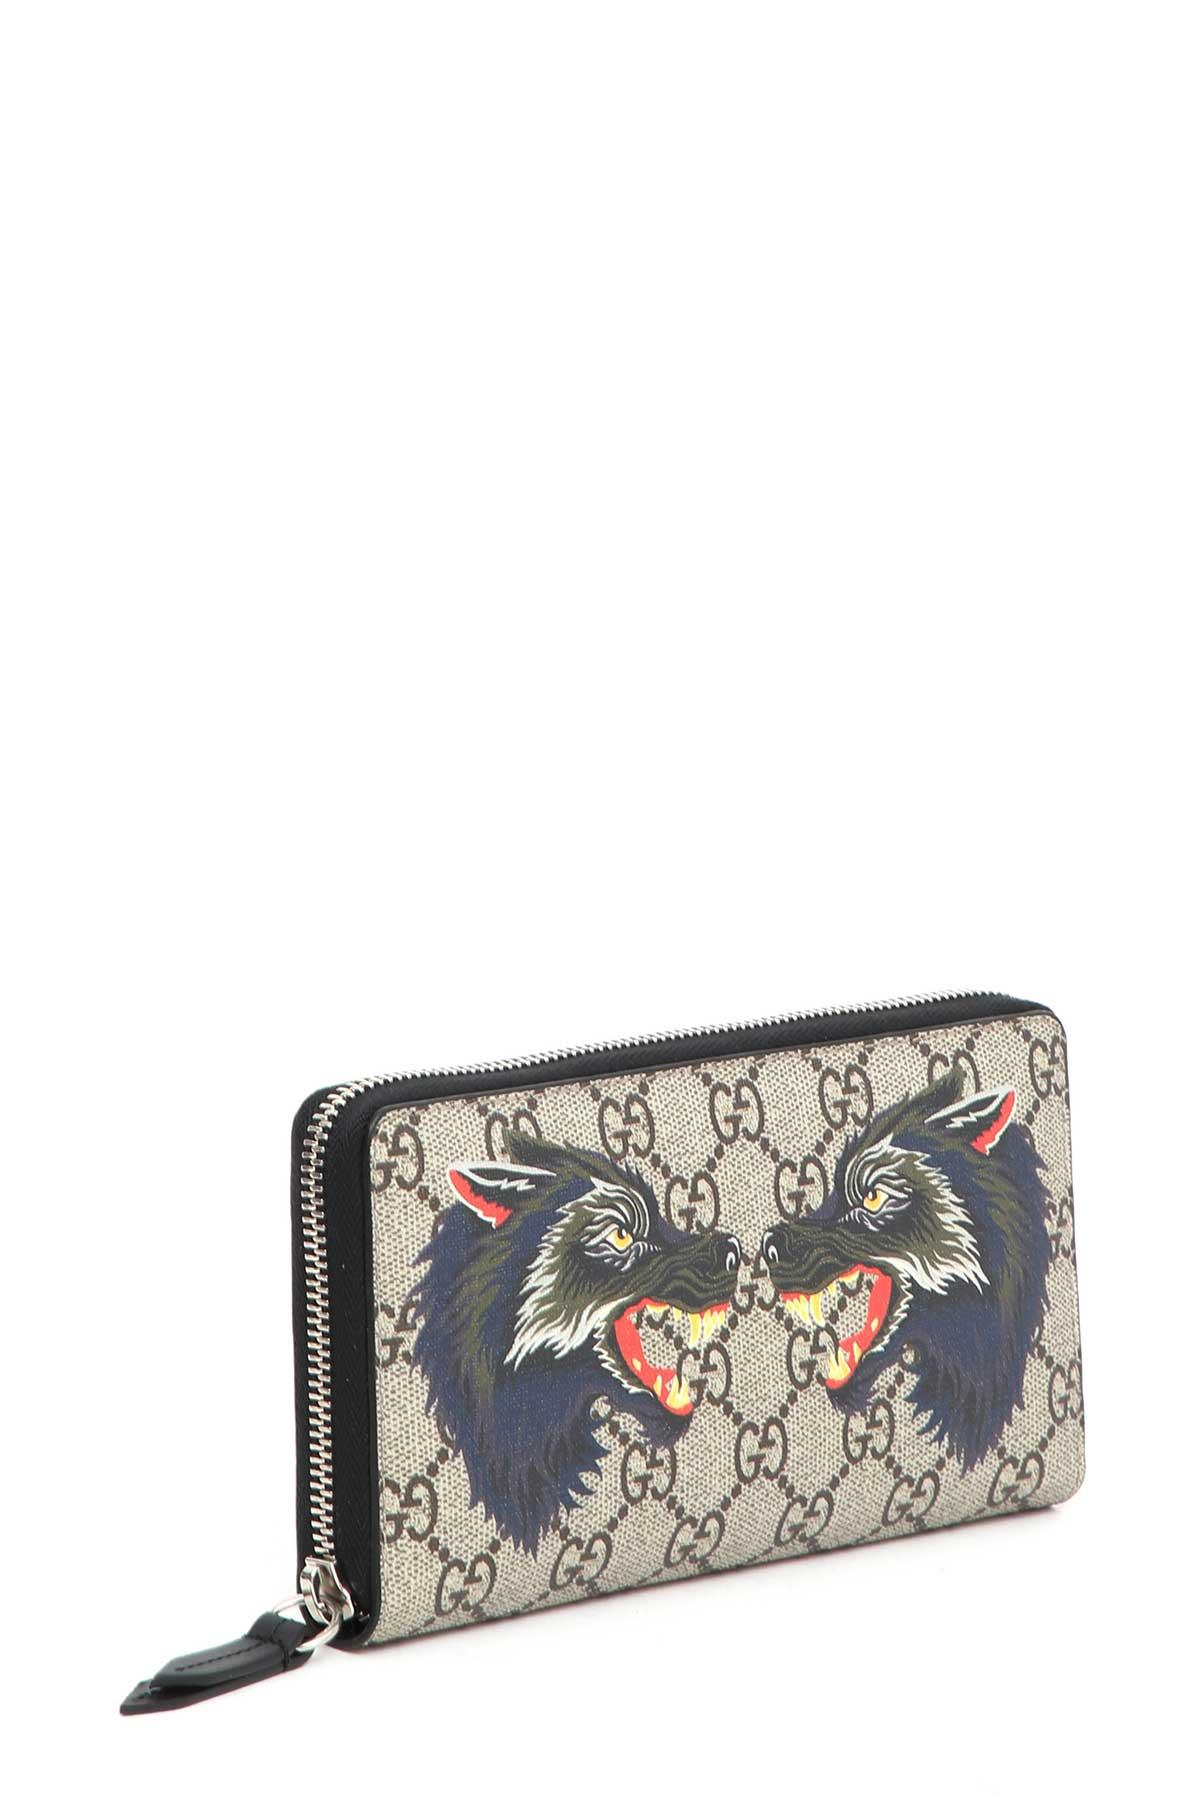 494572bc7b47 Gucci Wallet With Wolf Print In Multi | ModeSens